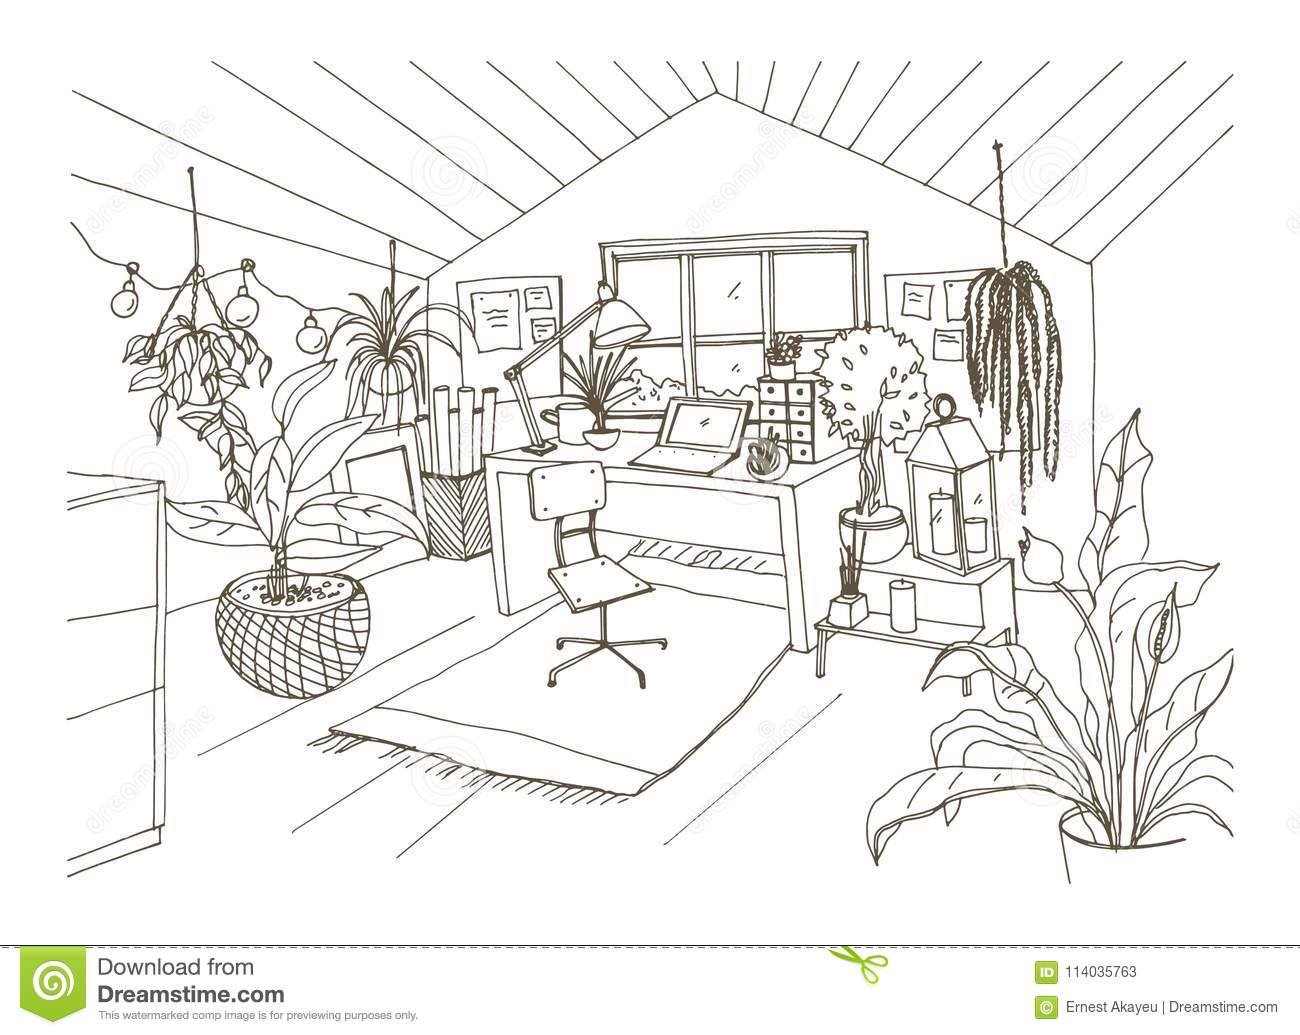 Attic drawing Creepy Monochrome Drawing Of Cozy Cabinet Mansard Or Attic Room Furnished In Modern Scandinavian Hygge Style Dreamstimecom Monochrome Drawing Of Cozy Cabinet Mansard Or Attic Room Furnished